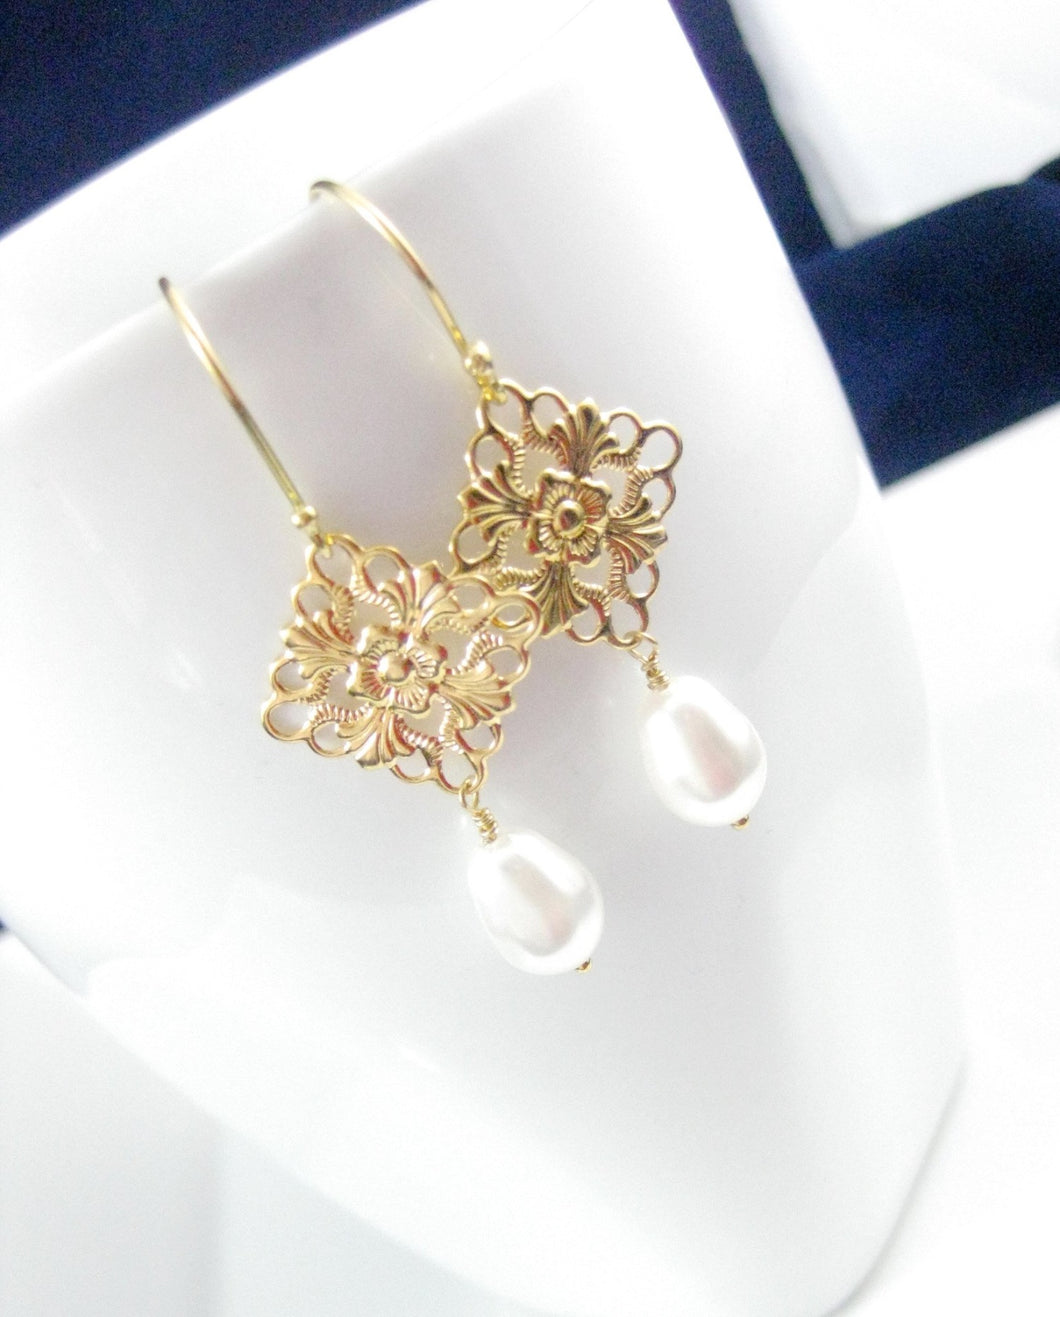 Gold and white pearl bridal earrings - Clairesbridal - 1